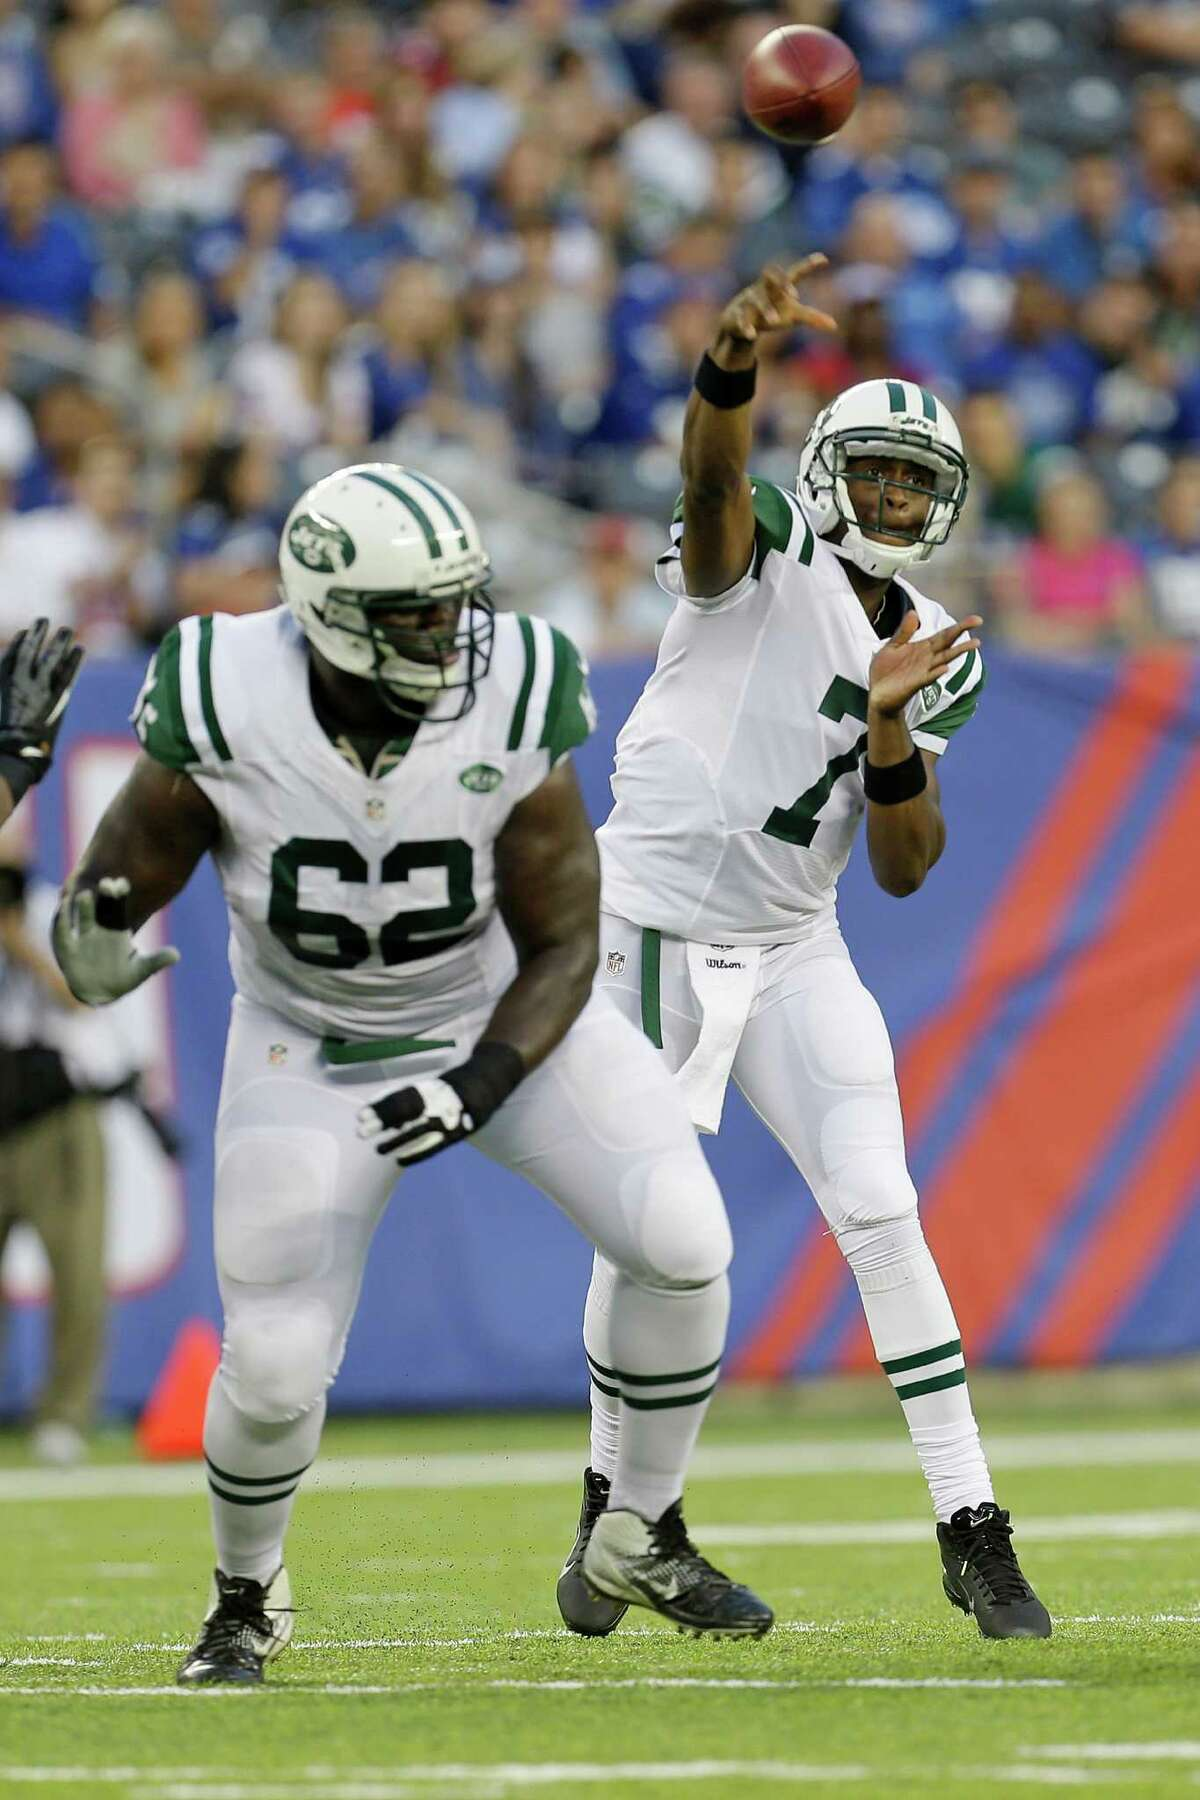 New York Jets quarterback Geno Smith (7) throws a pass over guard Vladimir Ducasse (62) during the first half of a preseason NFL football game against the New York Giants Saturday, Aug. 24, 2013, in East Rutherford N.J.